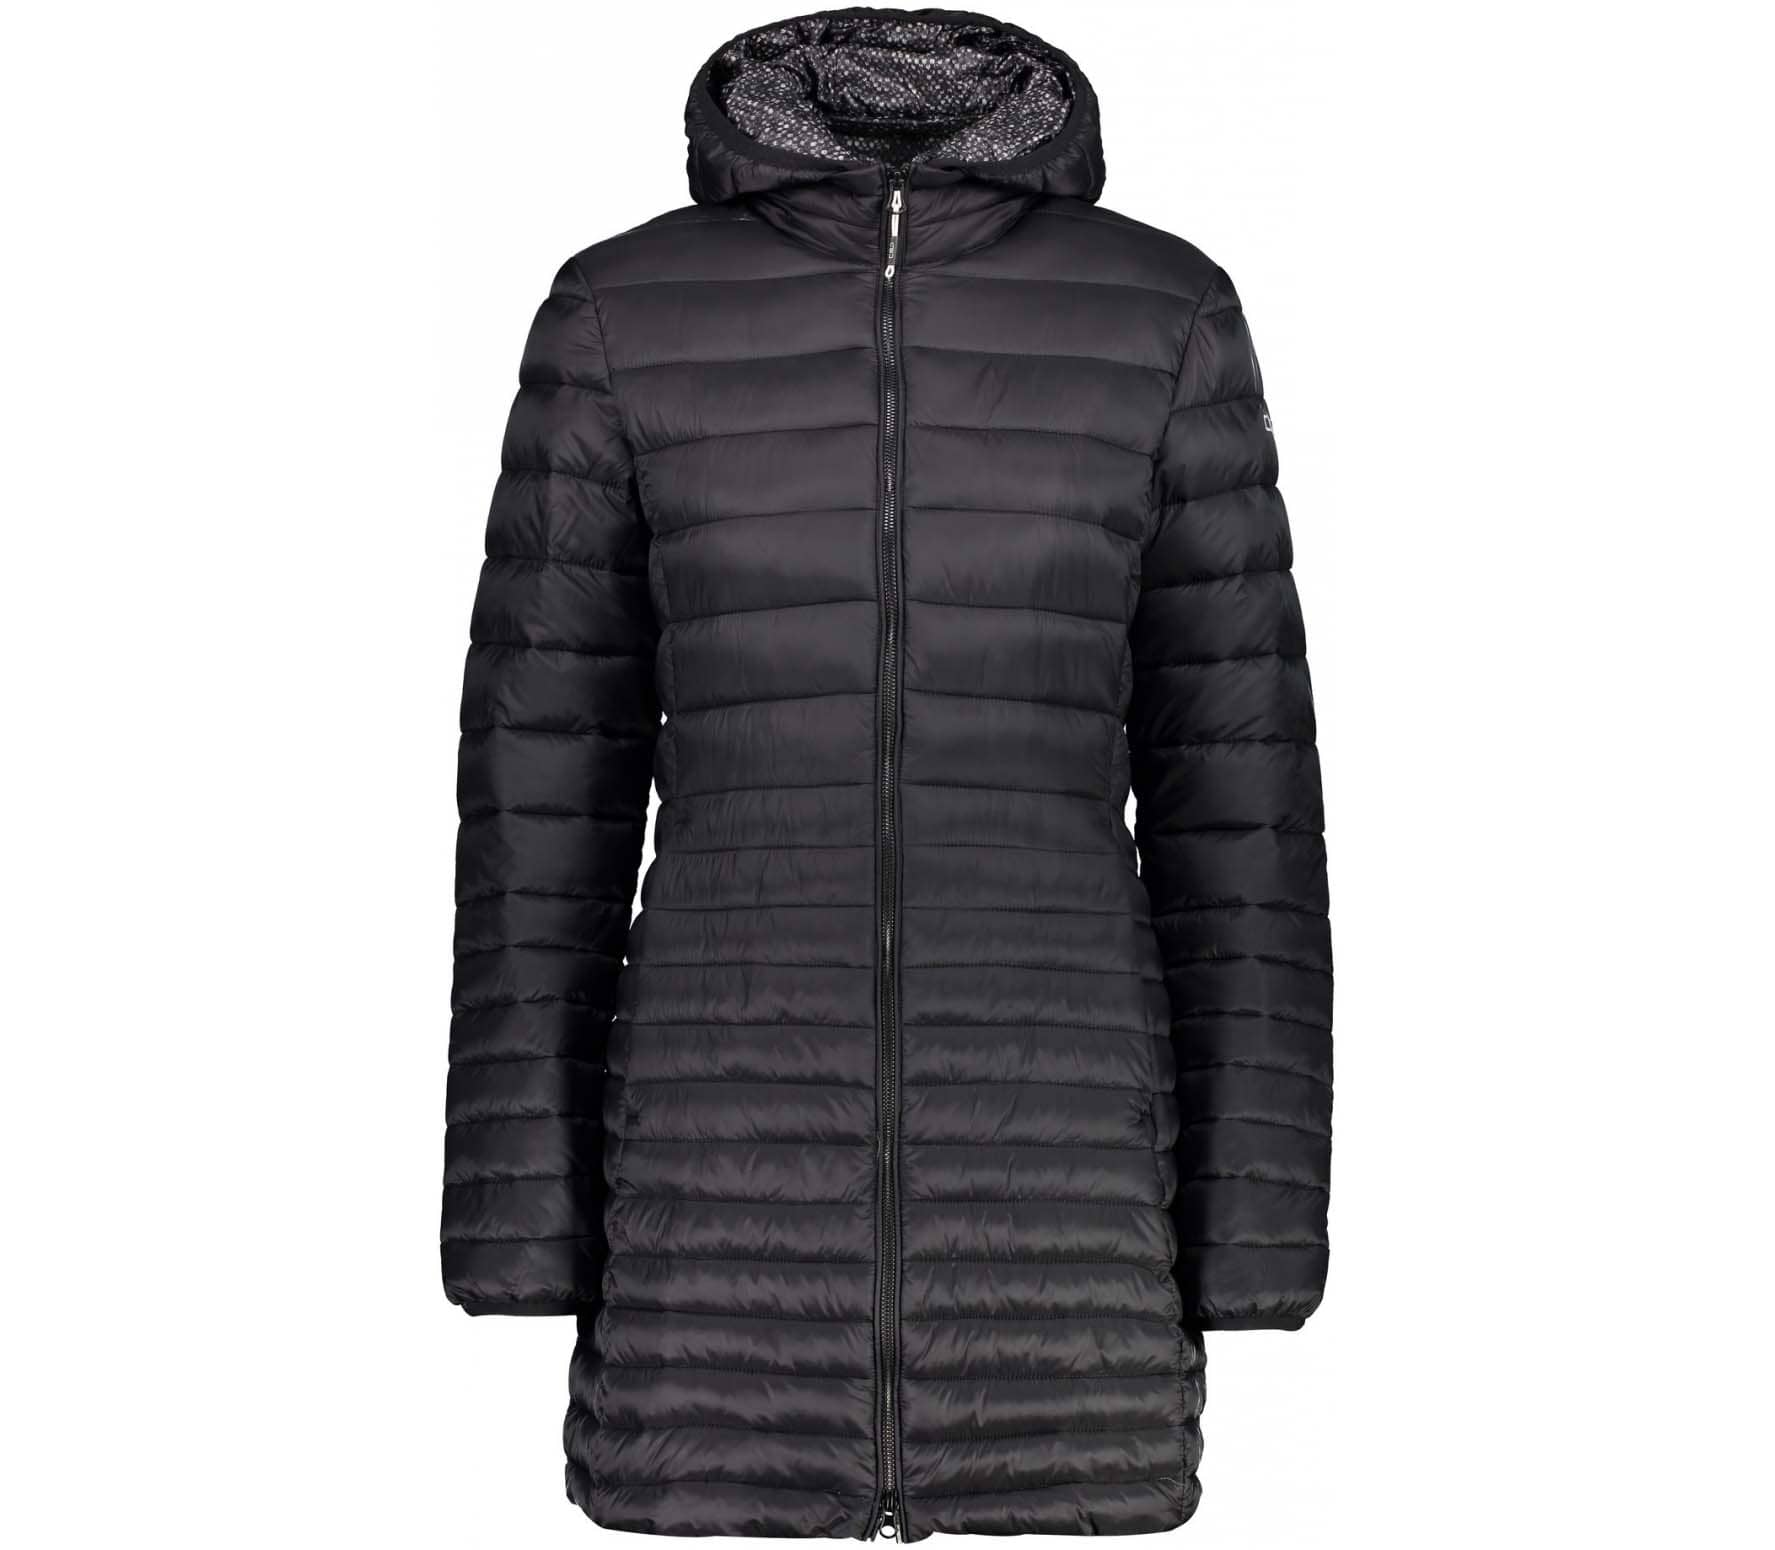 Cmp jacke damen thinsulate